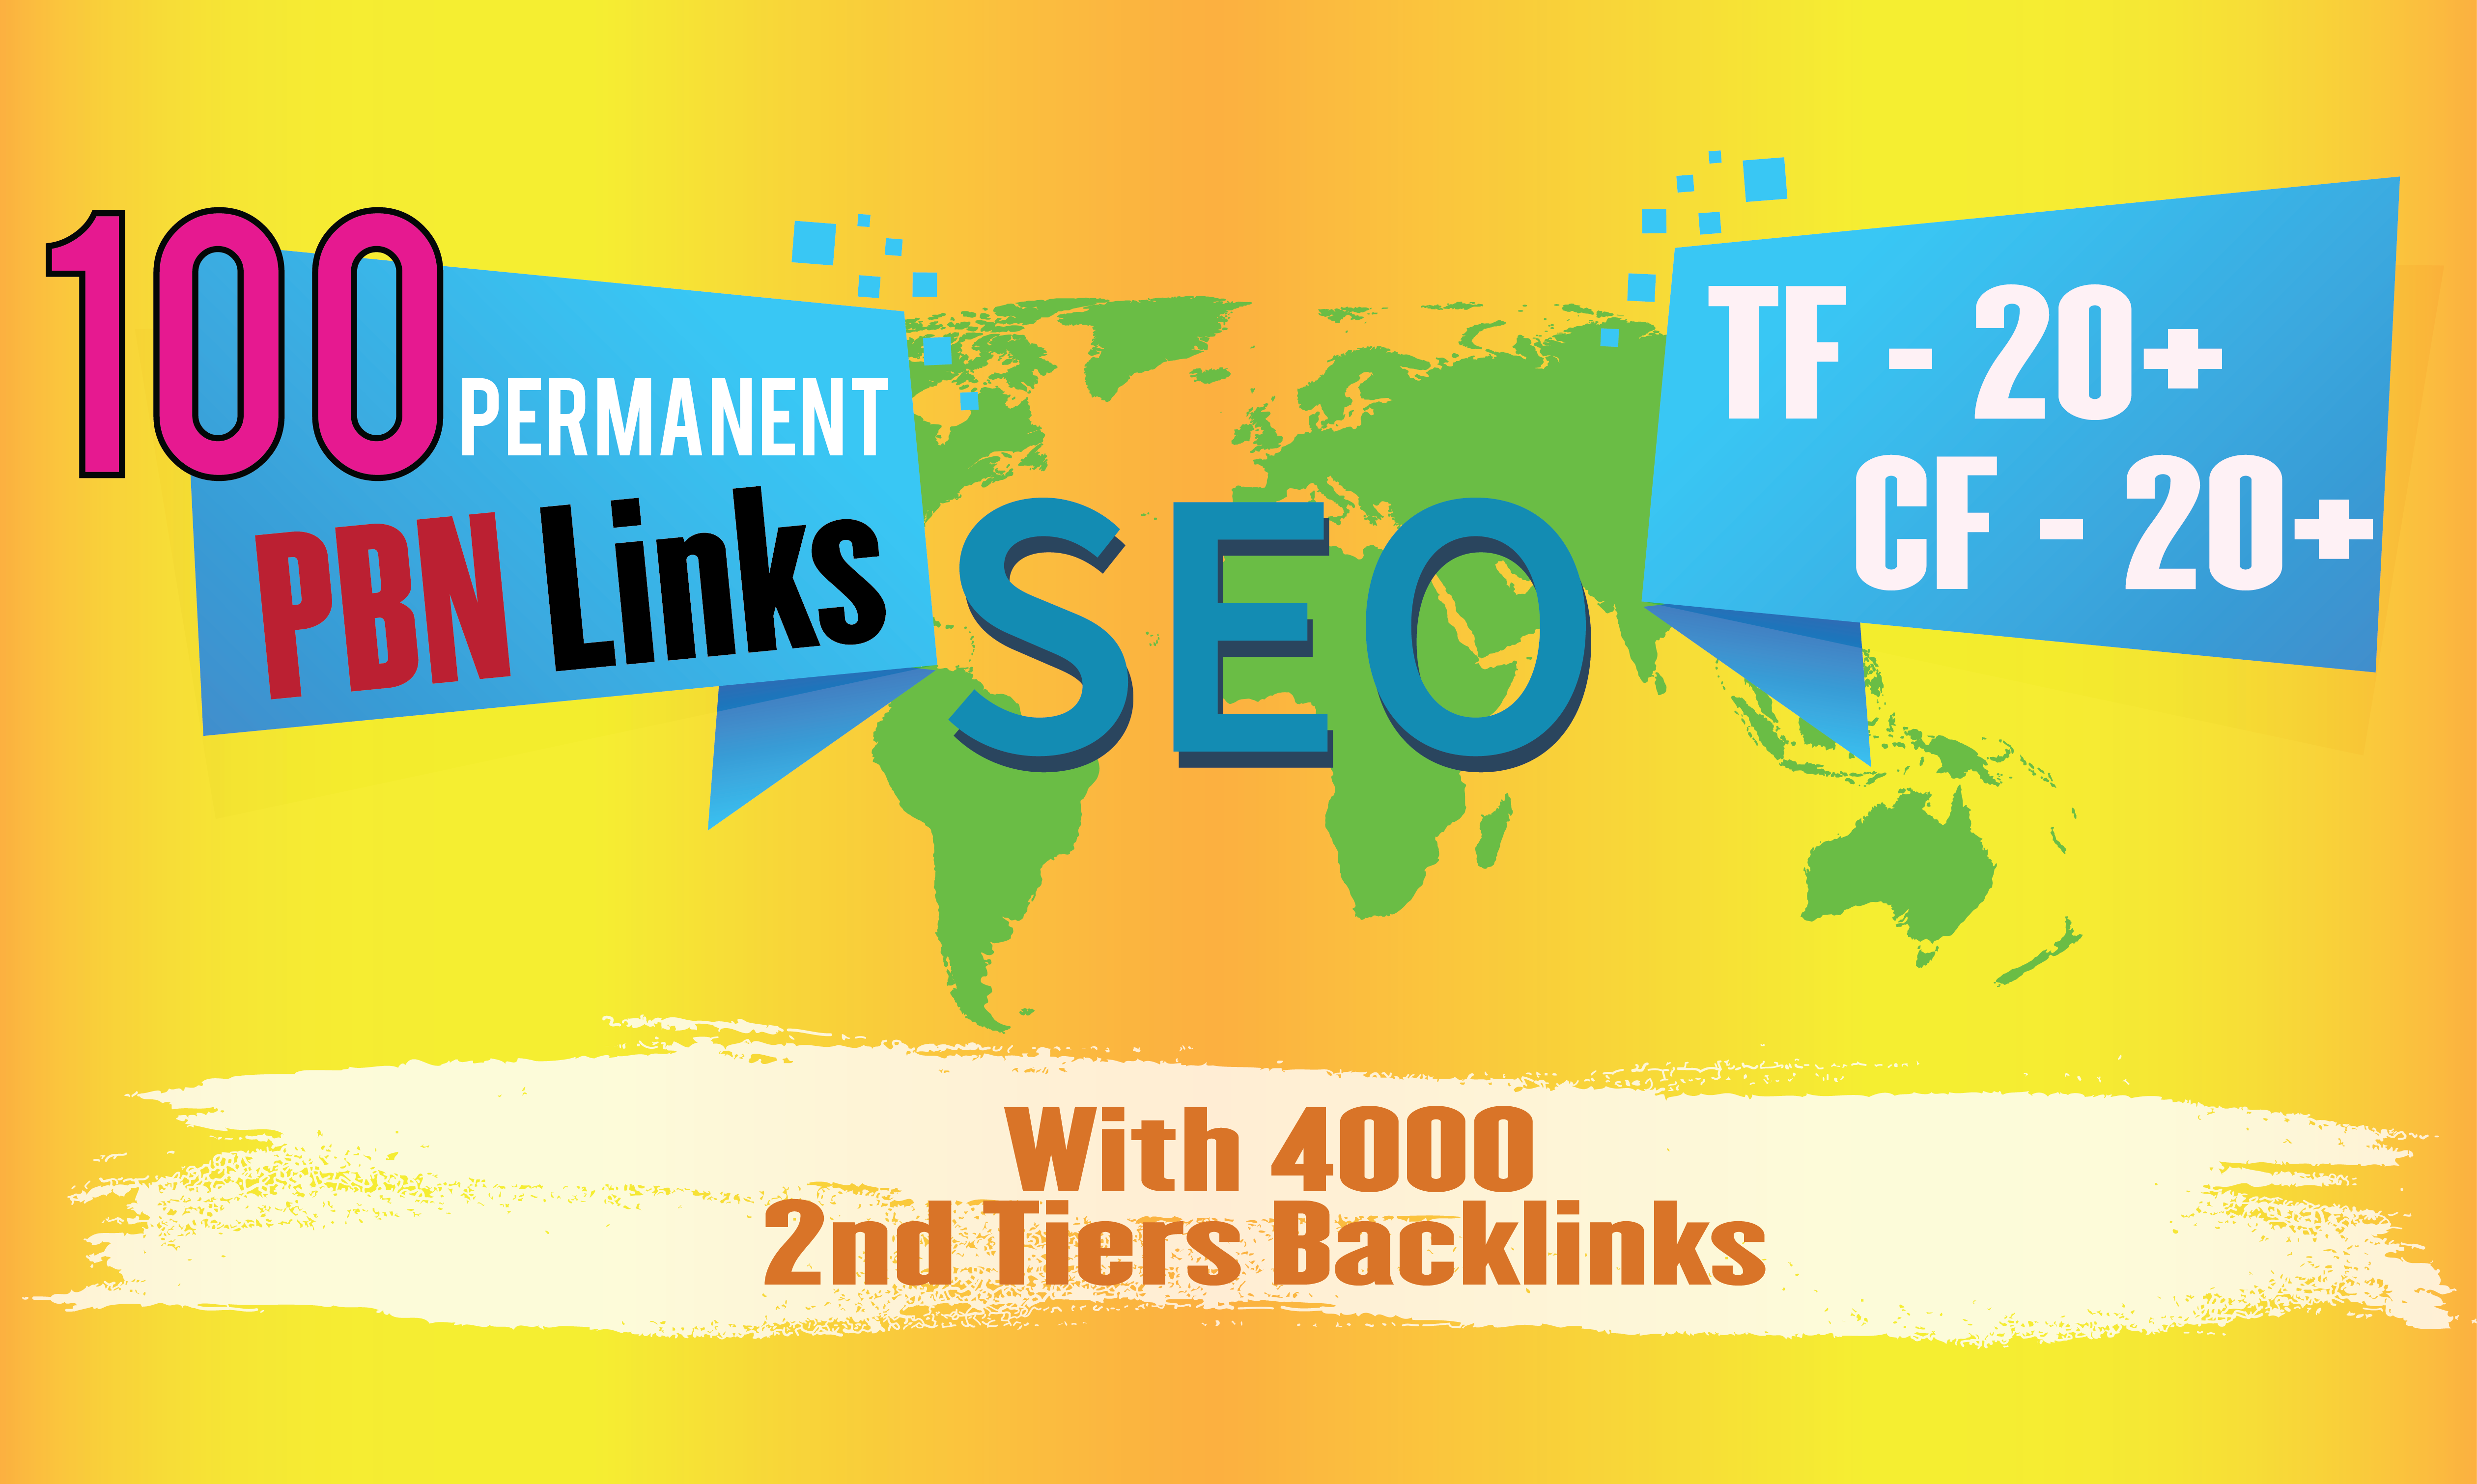 Build 100 Permanent Homepage PBN With 4000 2nd Tiers Backlinks